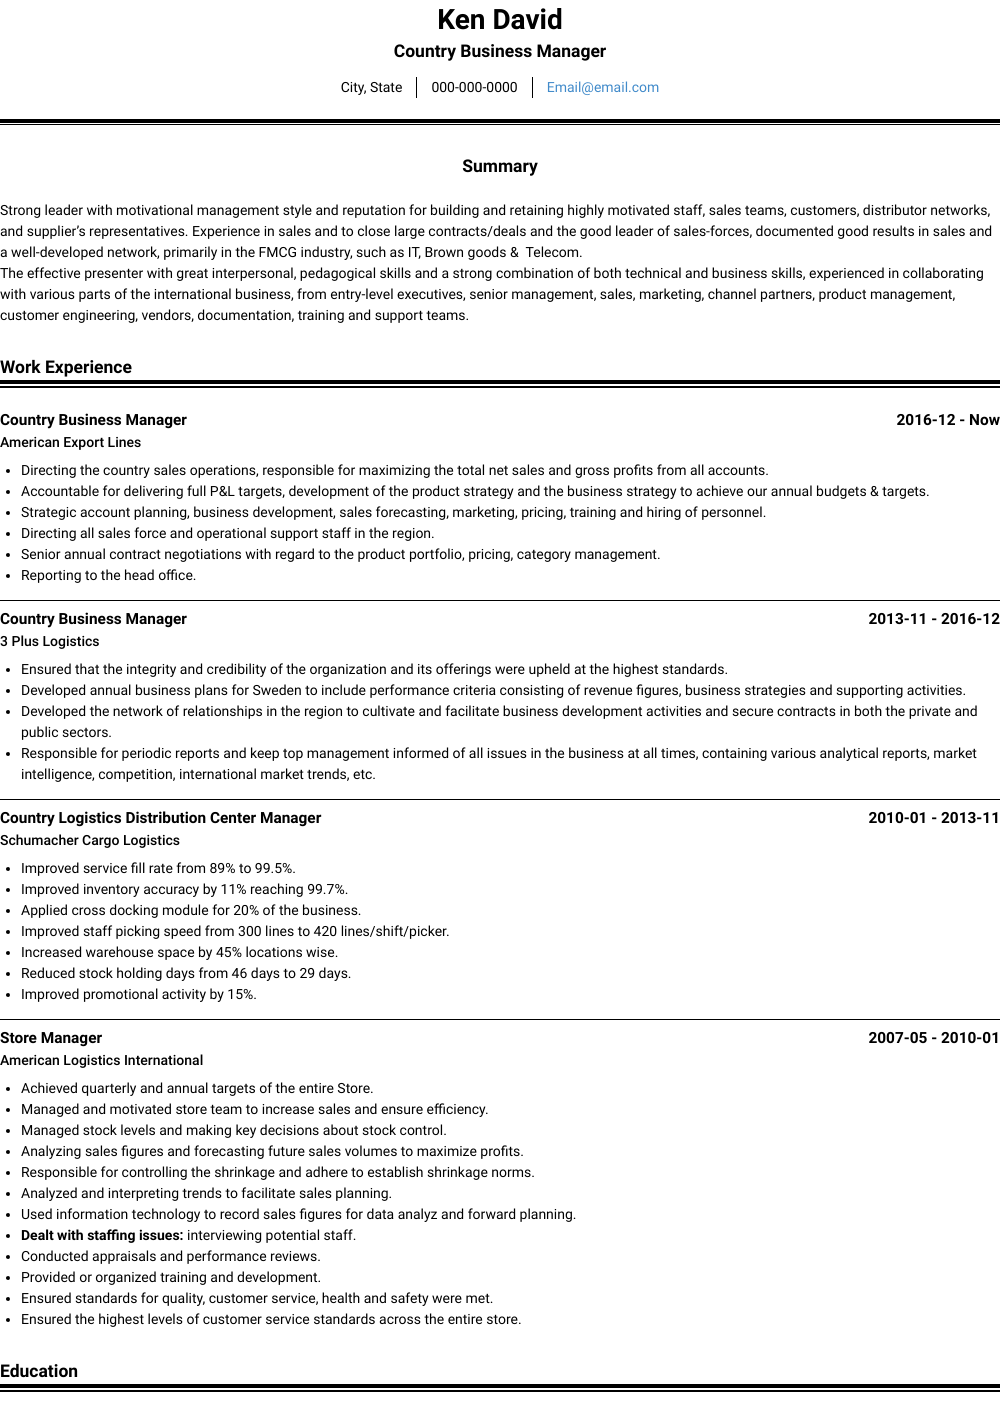 Country Business Manager Resume Sample and Template